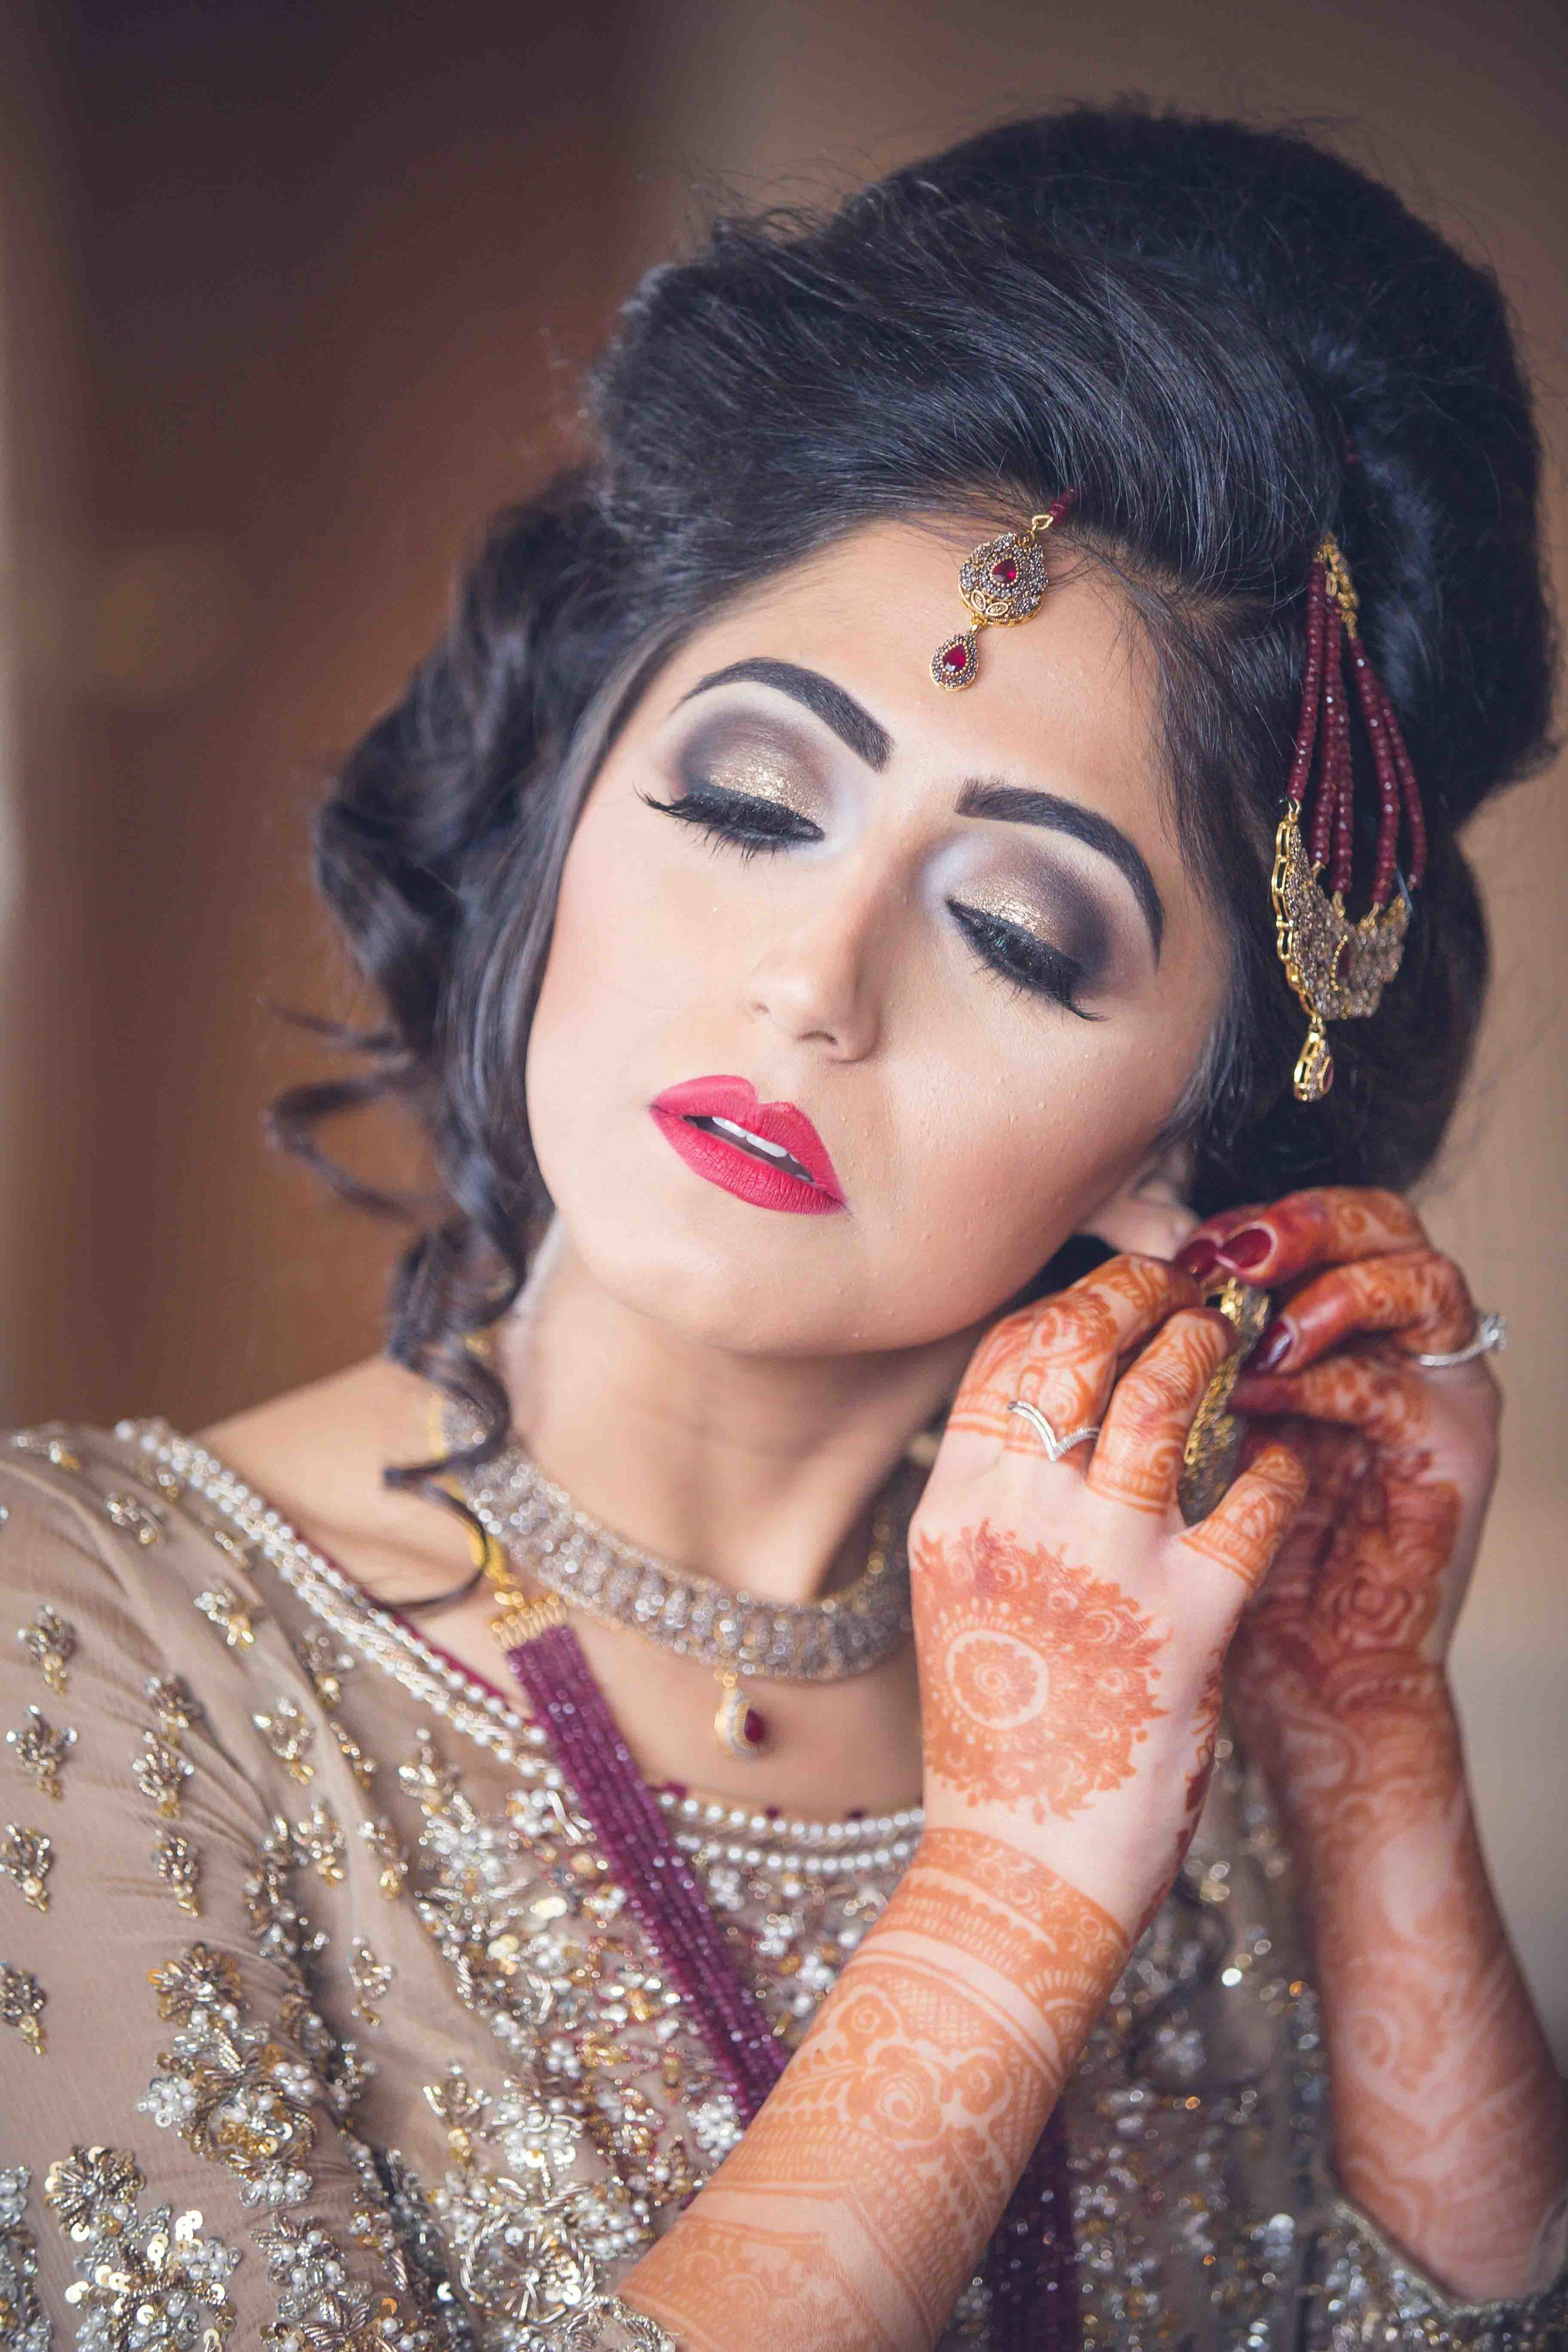 Opu Sultan Photography Asian wedding photography scotland edinburgh glasgow manchester birmingham london-239.jpg